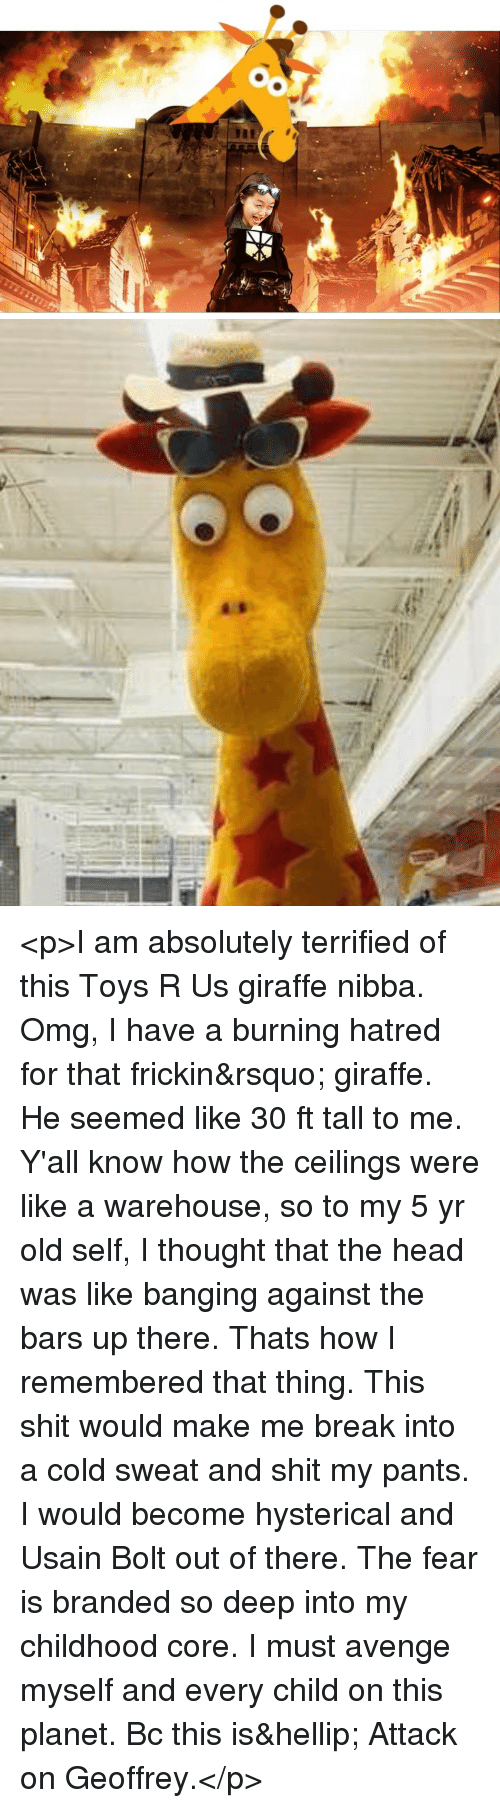 Usain Bolt: <p>I am absolutely terrified of this Toys R Us giraffe nibba. Omg, I have a burning hatred for that frickin&rsquo; giraffe. He seemed like 30 ft tall to me. Y'all know how the ceilings were like a warehouse, so to my 5 yr old self, I thought that the head was like banging against the bars up there. Thats how I remembered that thing. This shit would make me break into a cold sweat and shit my pants. I would become hysterical and Usain Bolt out of there. The fear is branded so deep into my childhood core. I must avenge myself and every child on this planet. Bc this is&hellip; Attack on Geoffrey.</p>